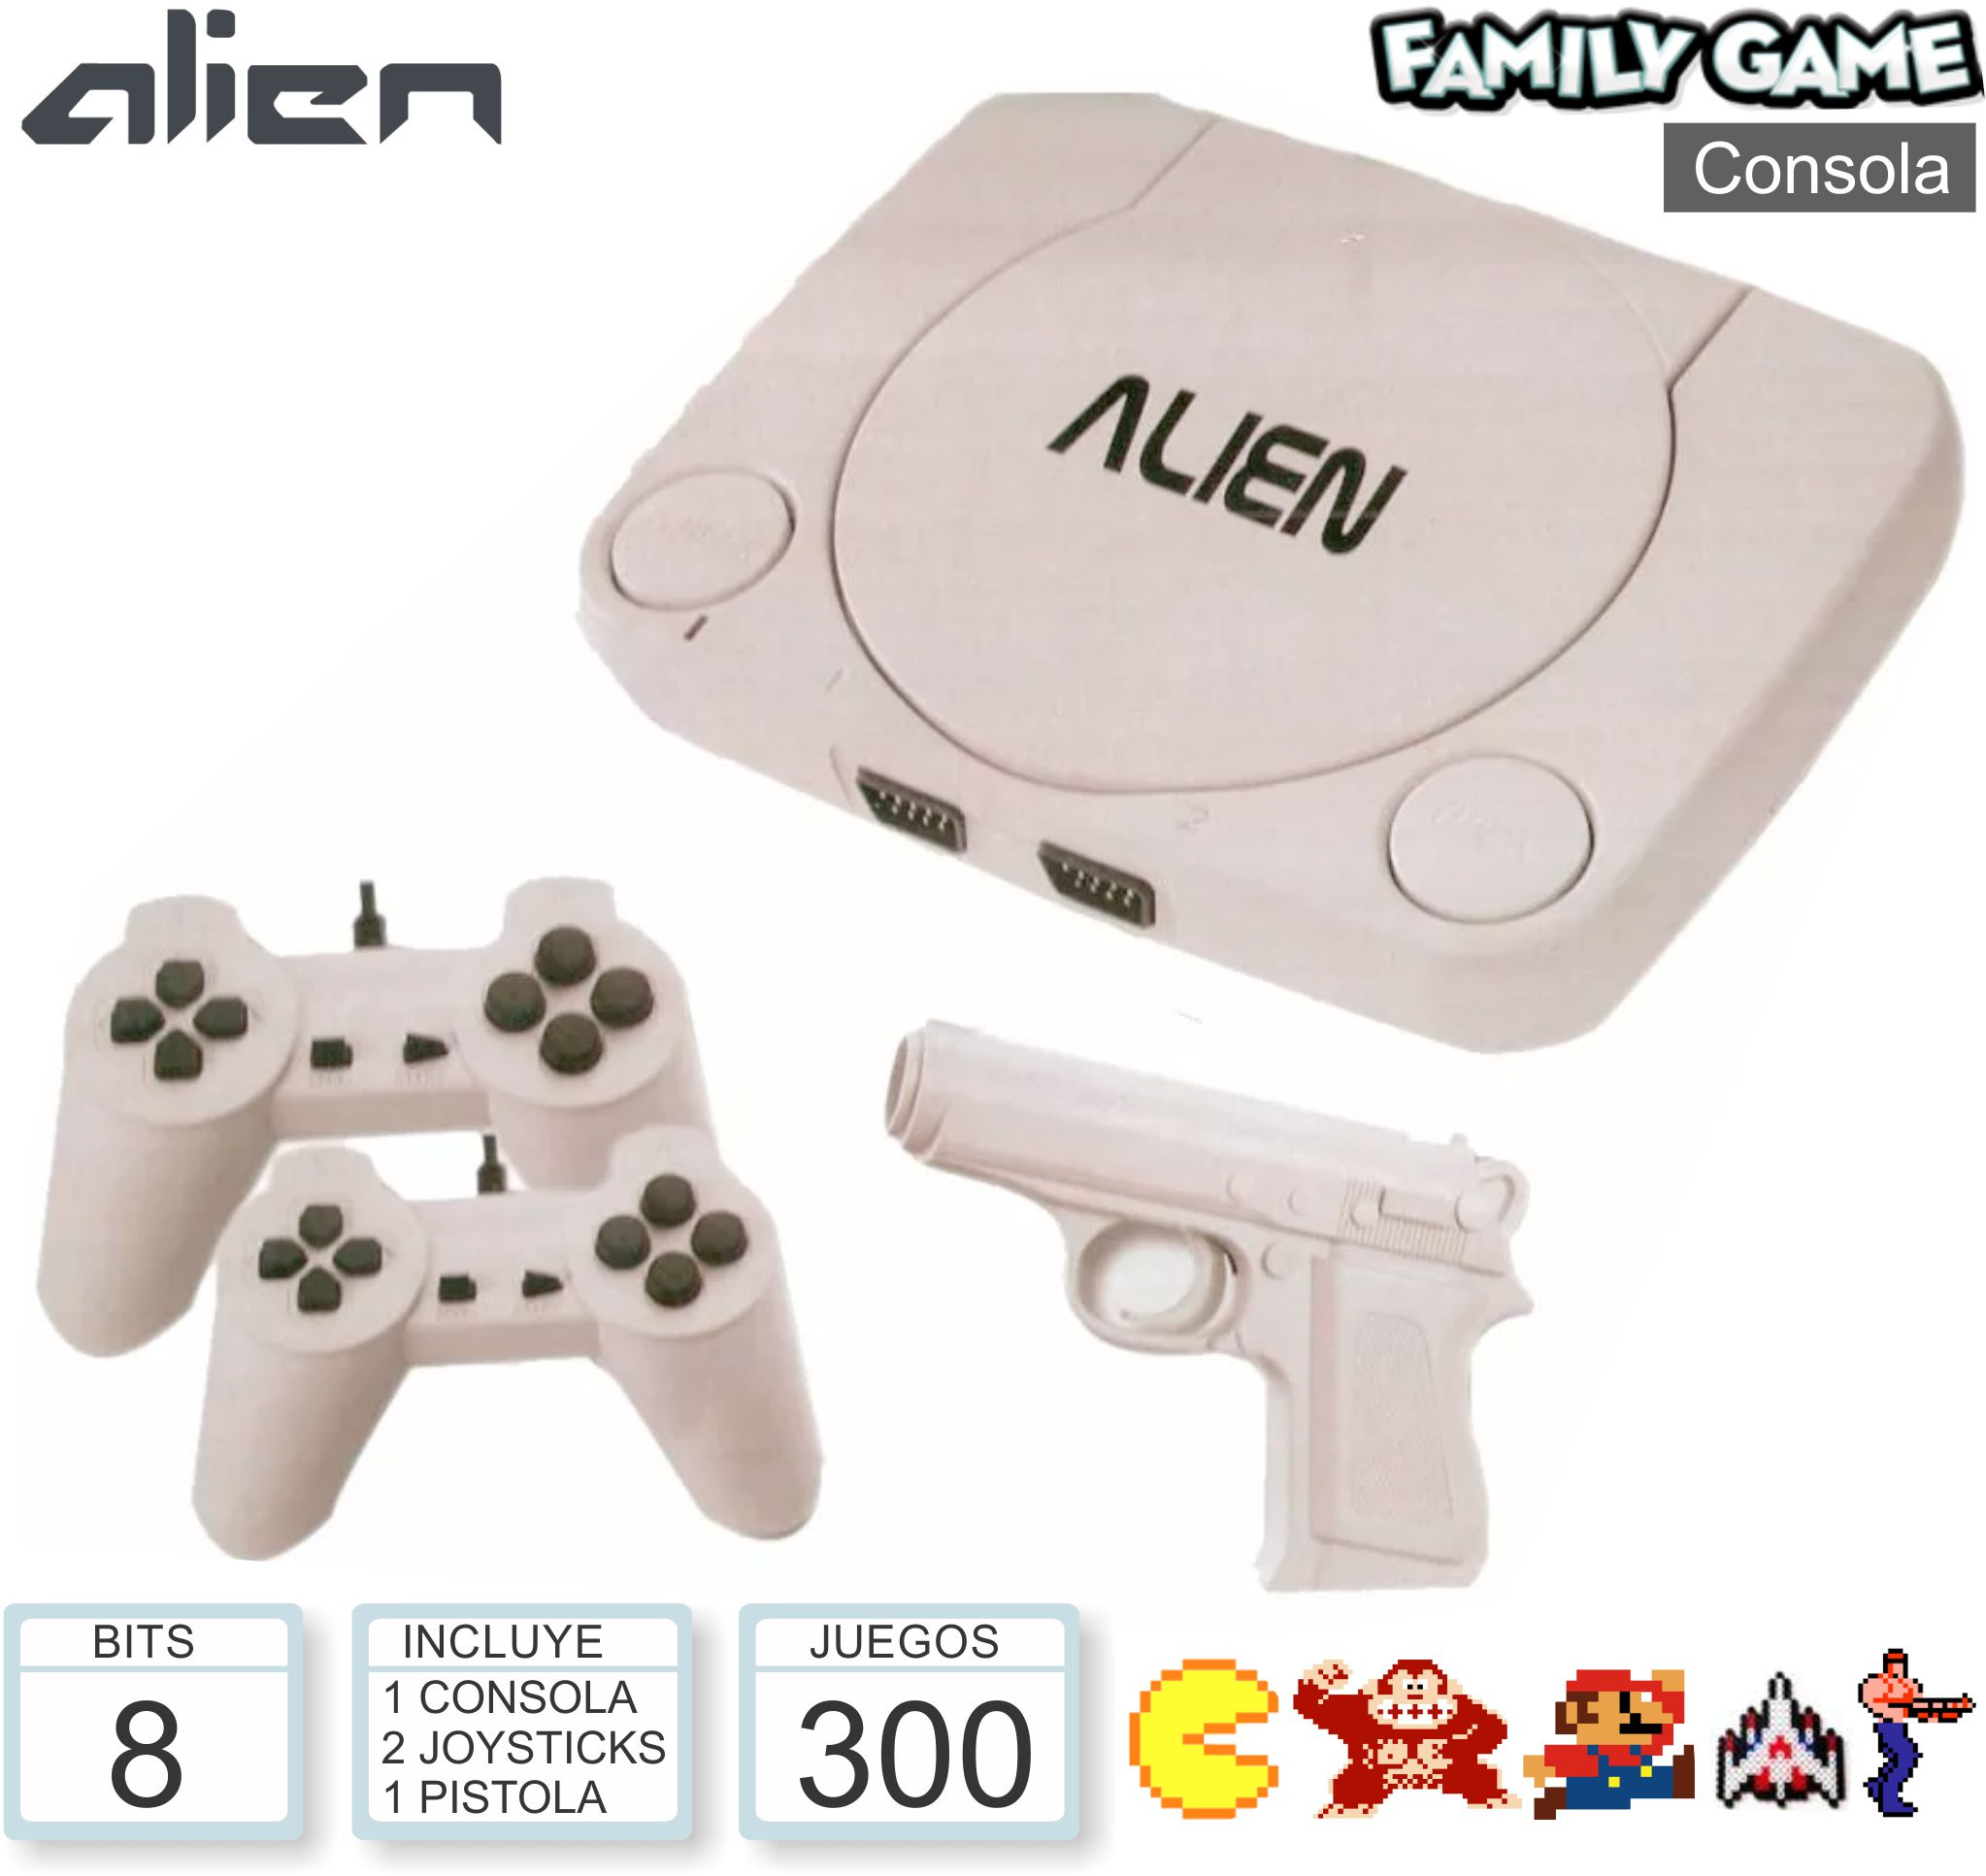 Consola ALIEN Family Game (Cons+2 Joy+ Pist)